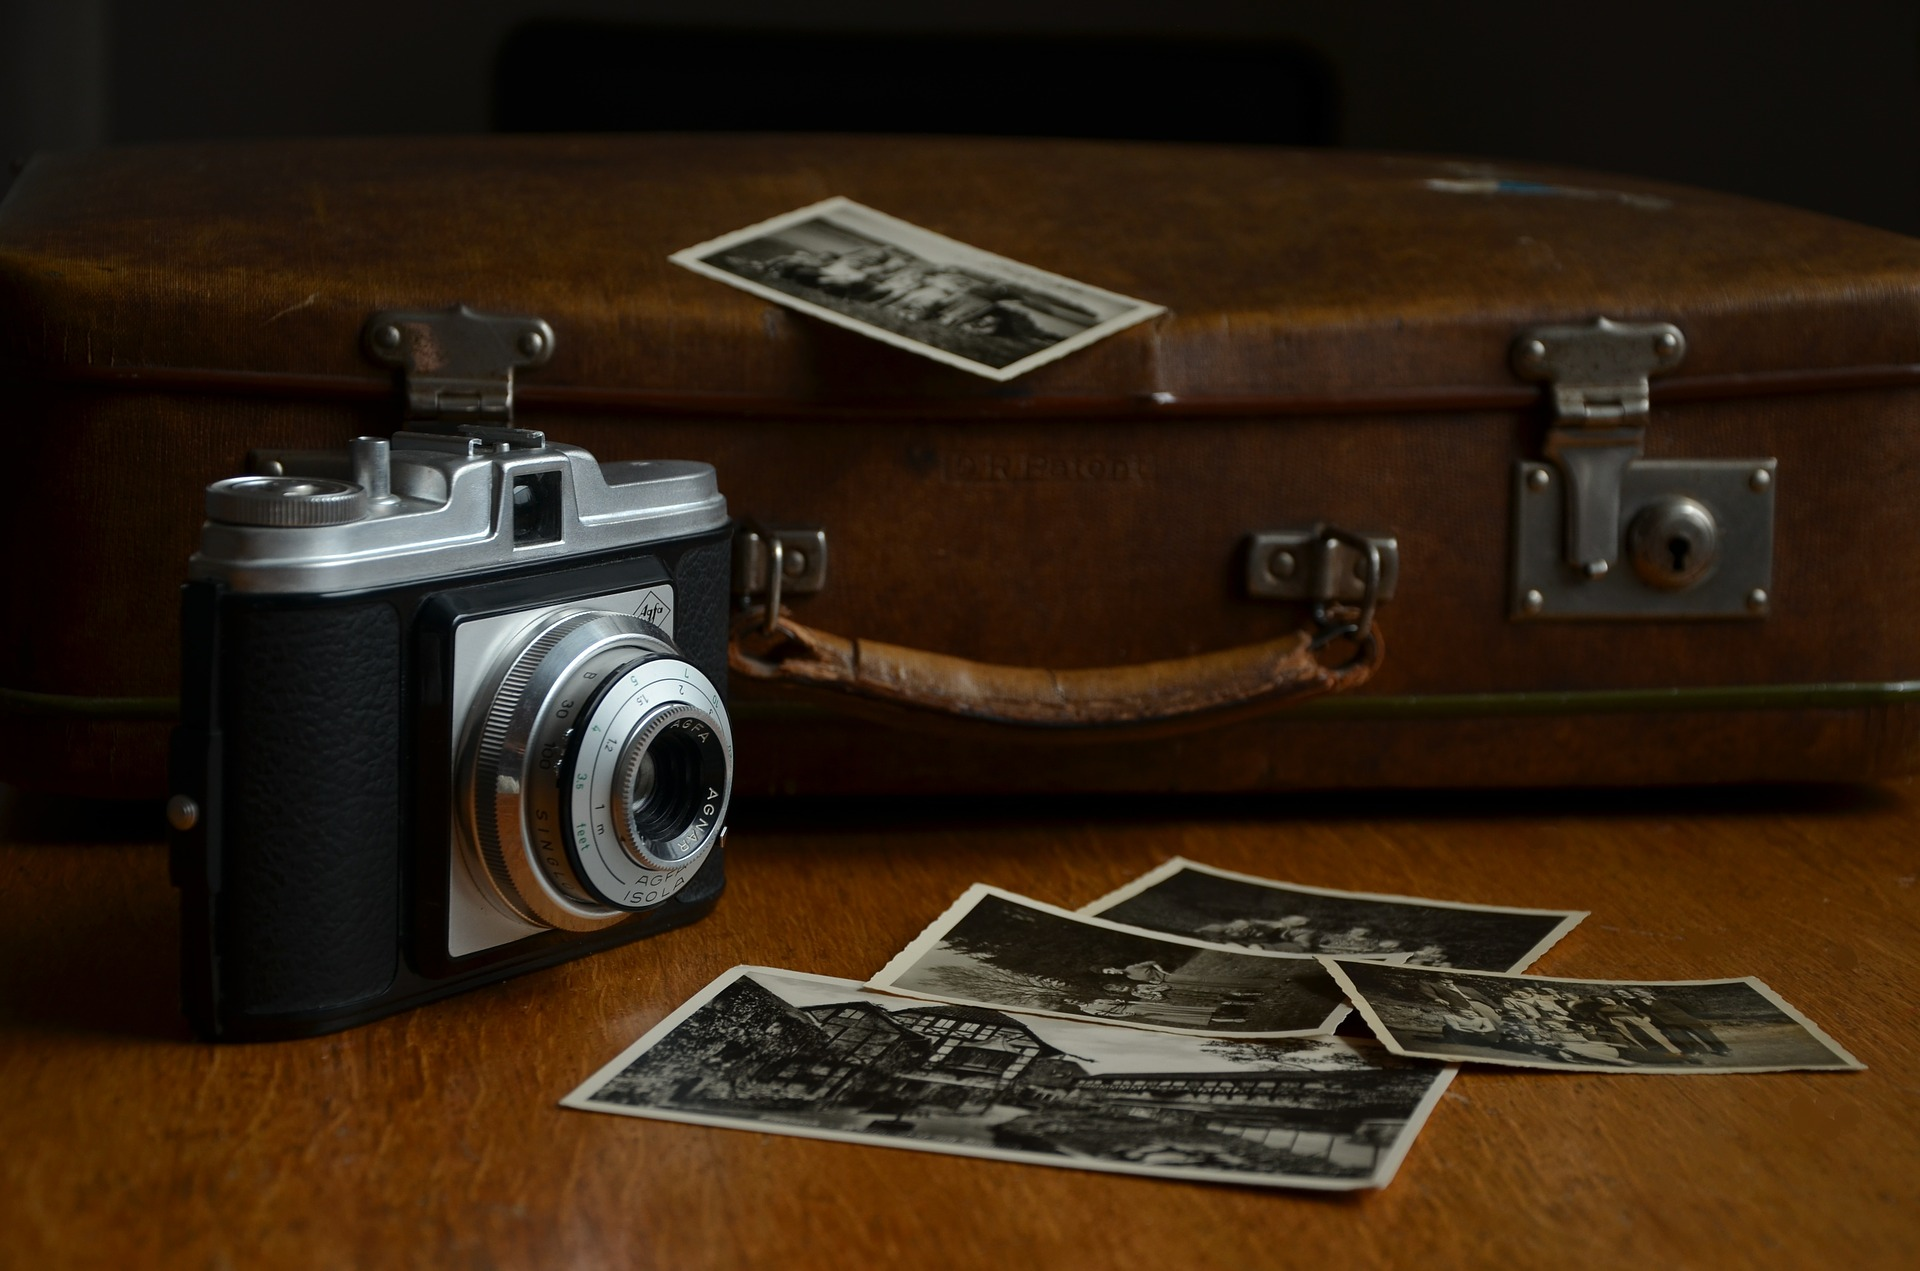 Vital Equipment To Have For Street Photography